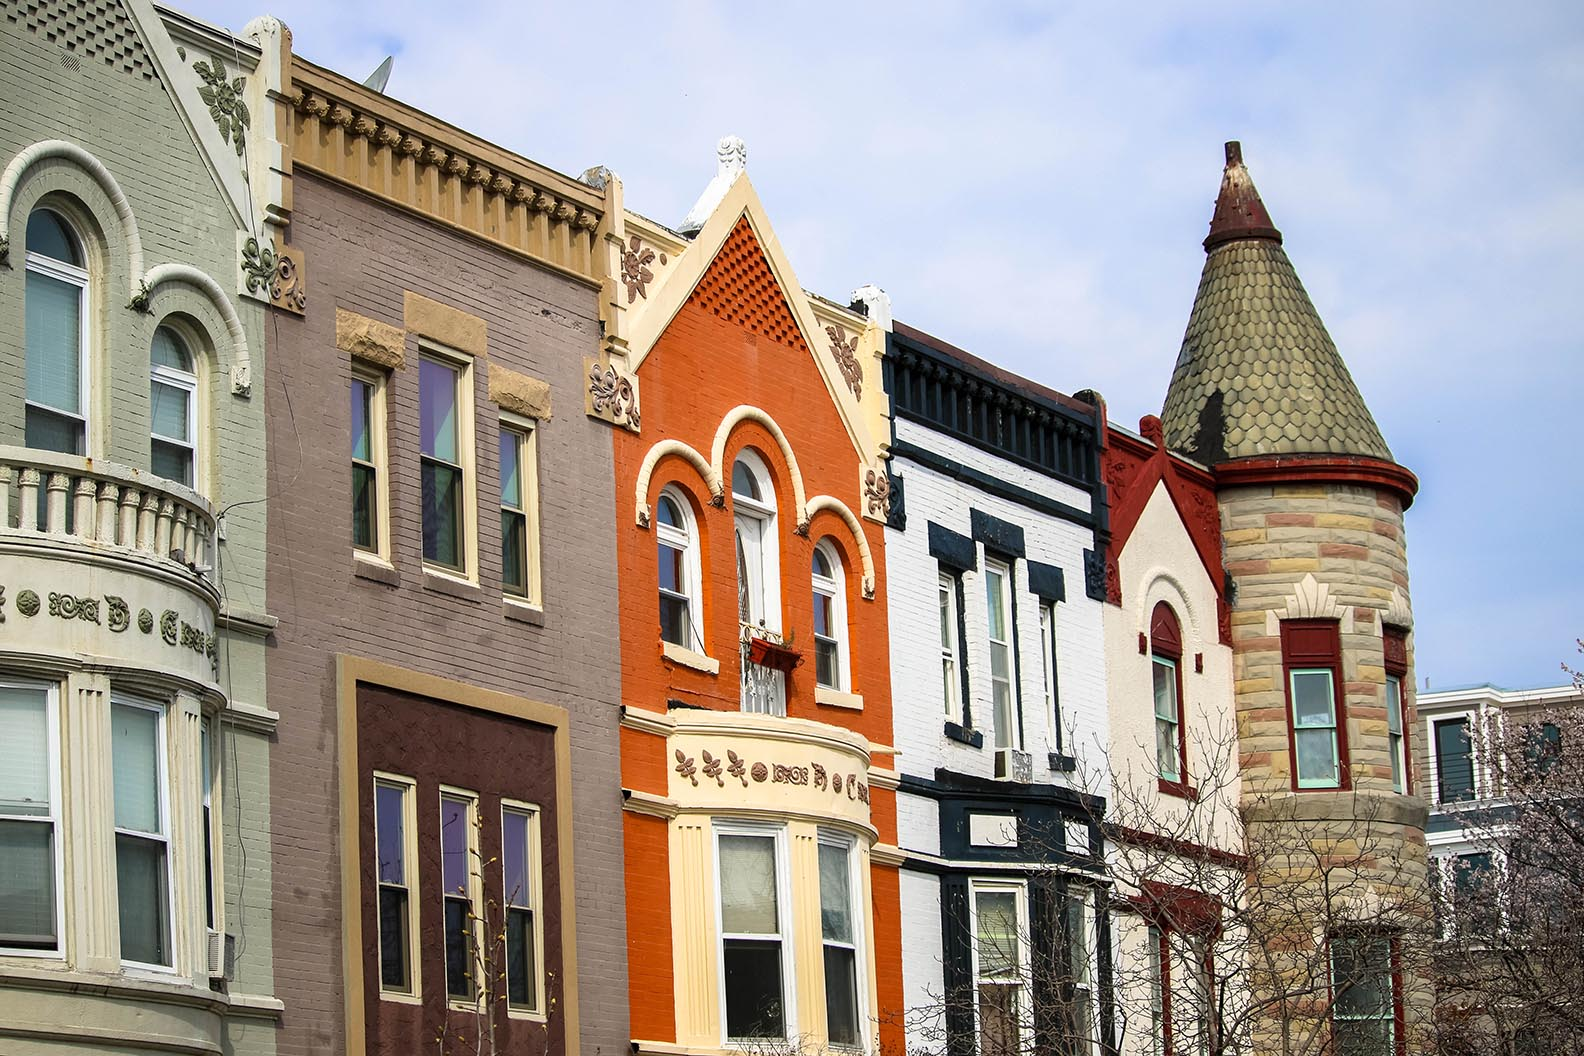 Row houses in Atlas District, Washington, D.C.